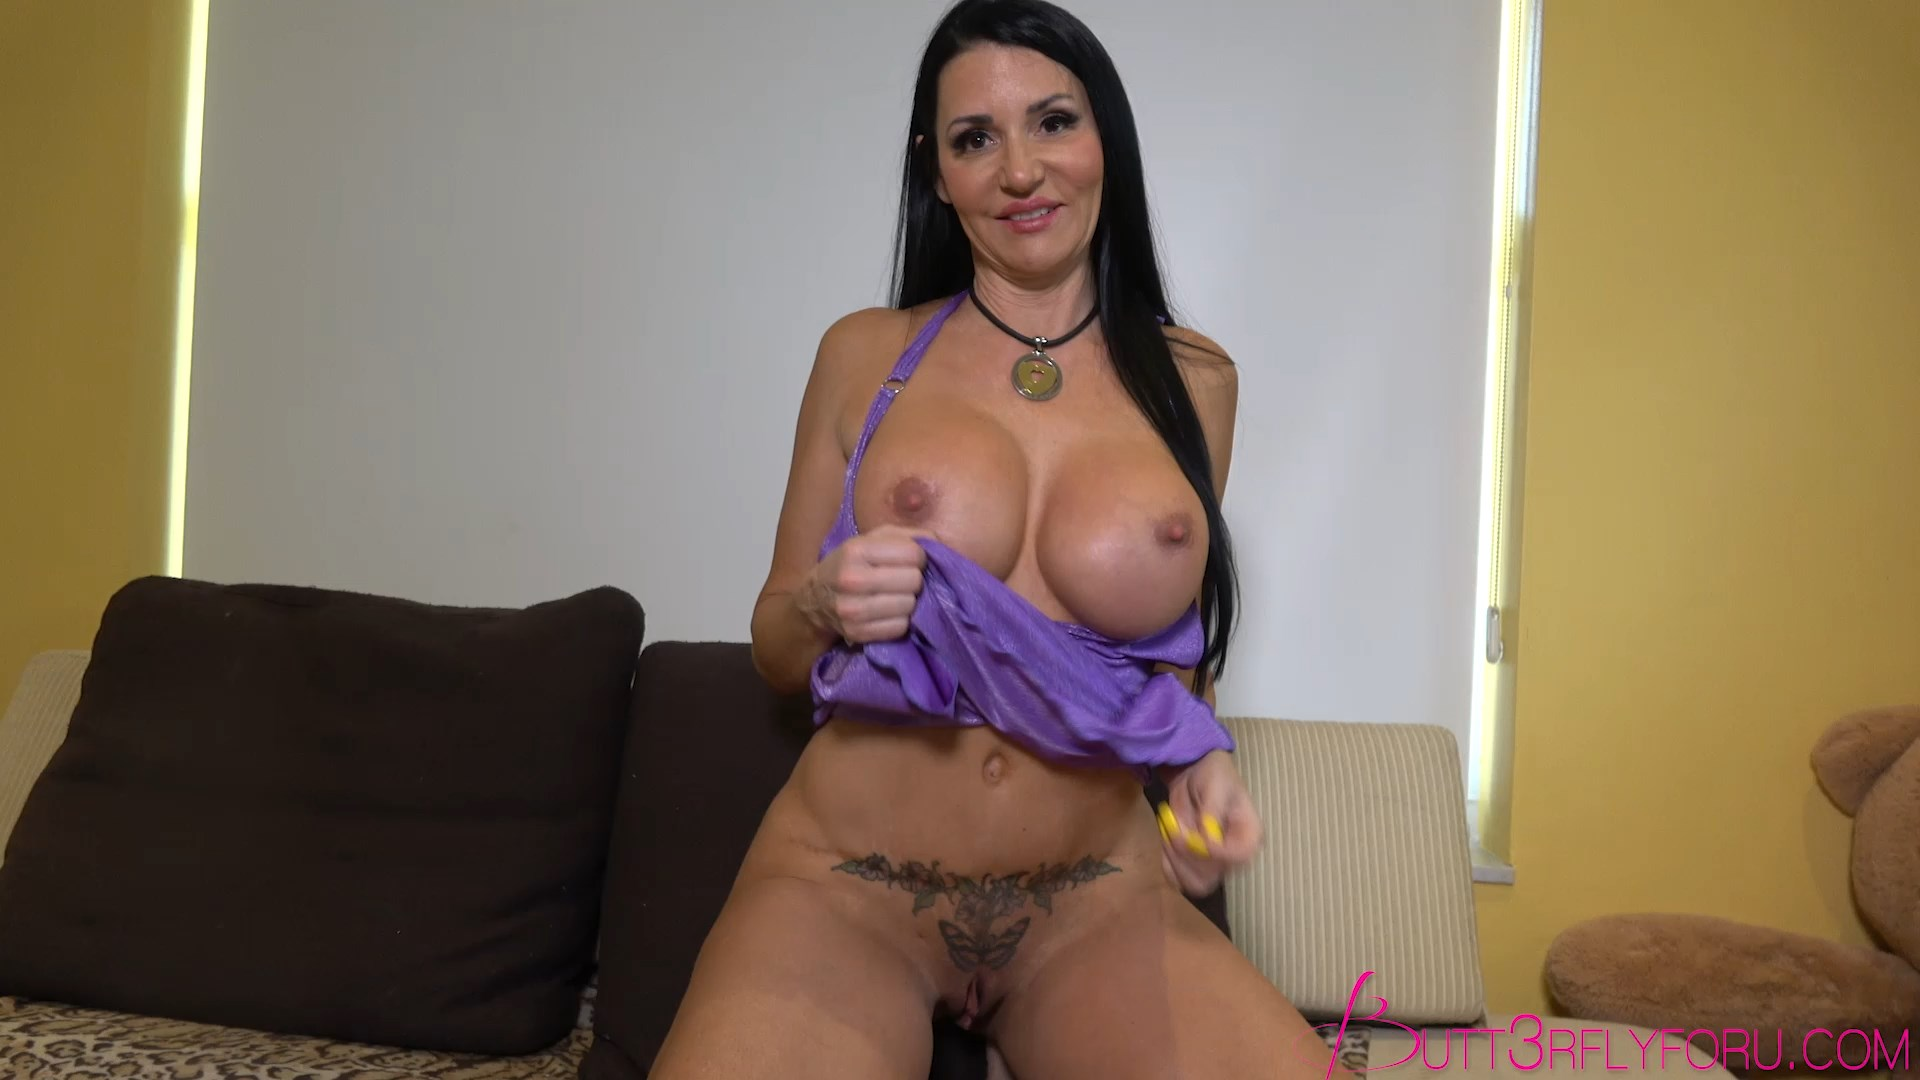 Butt3rflyforU Fantasies - Family Affair Of Fistting And Fucking 1080p